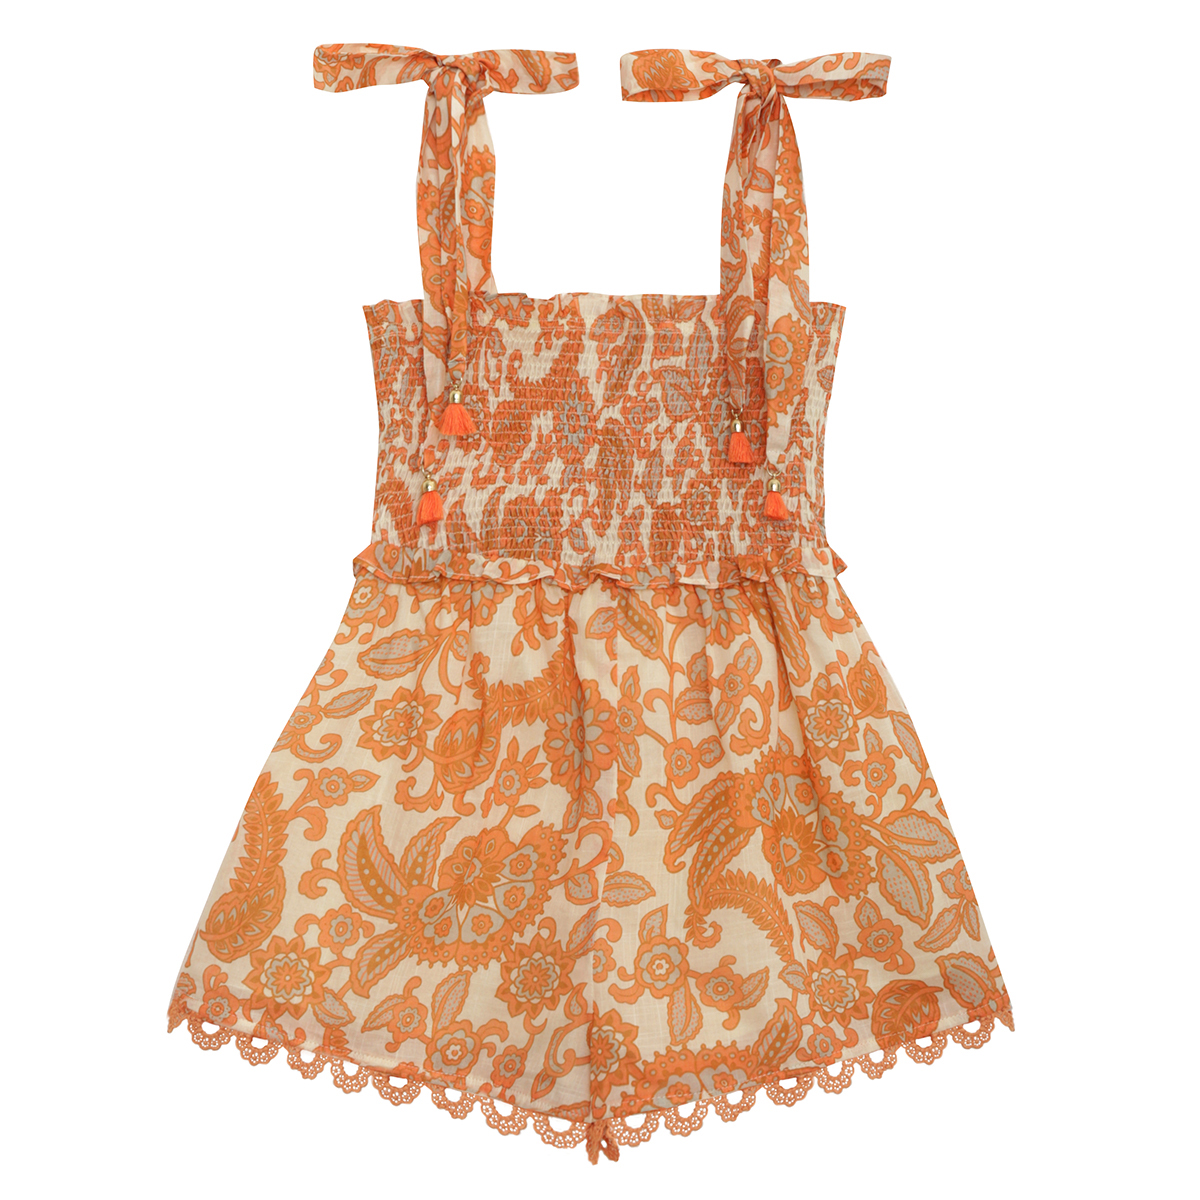 Zimmermann Peggy Shirred Playsuit Orange Paisley FW19